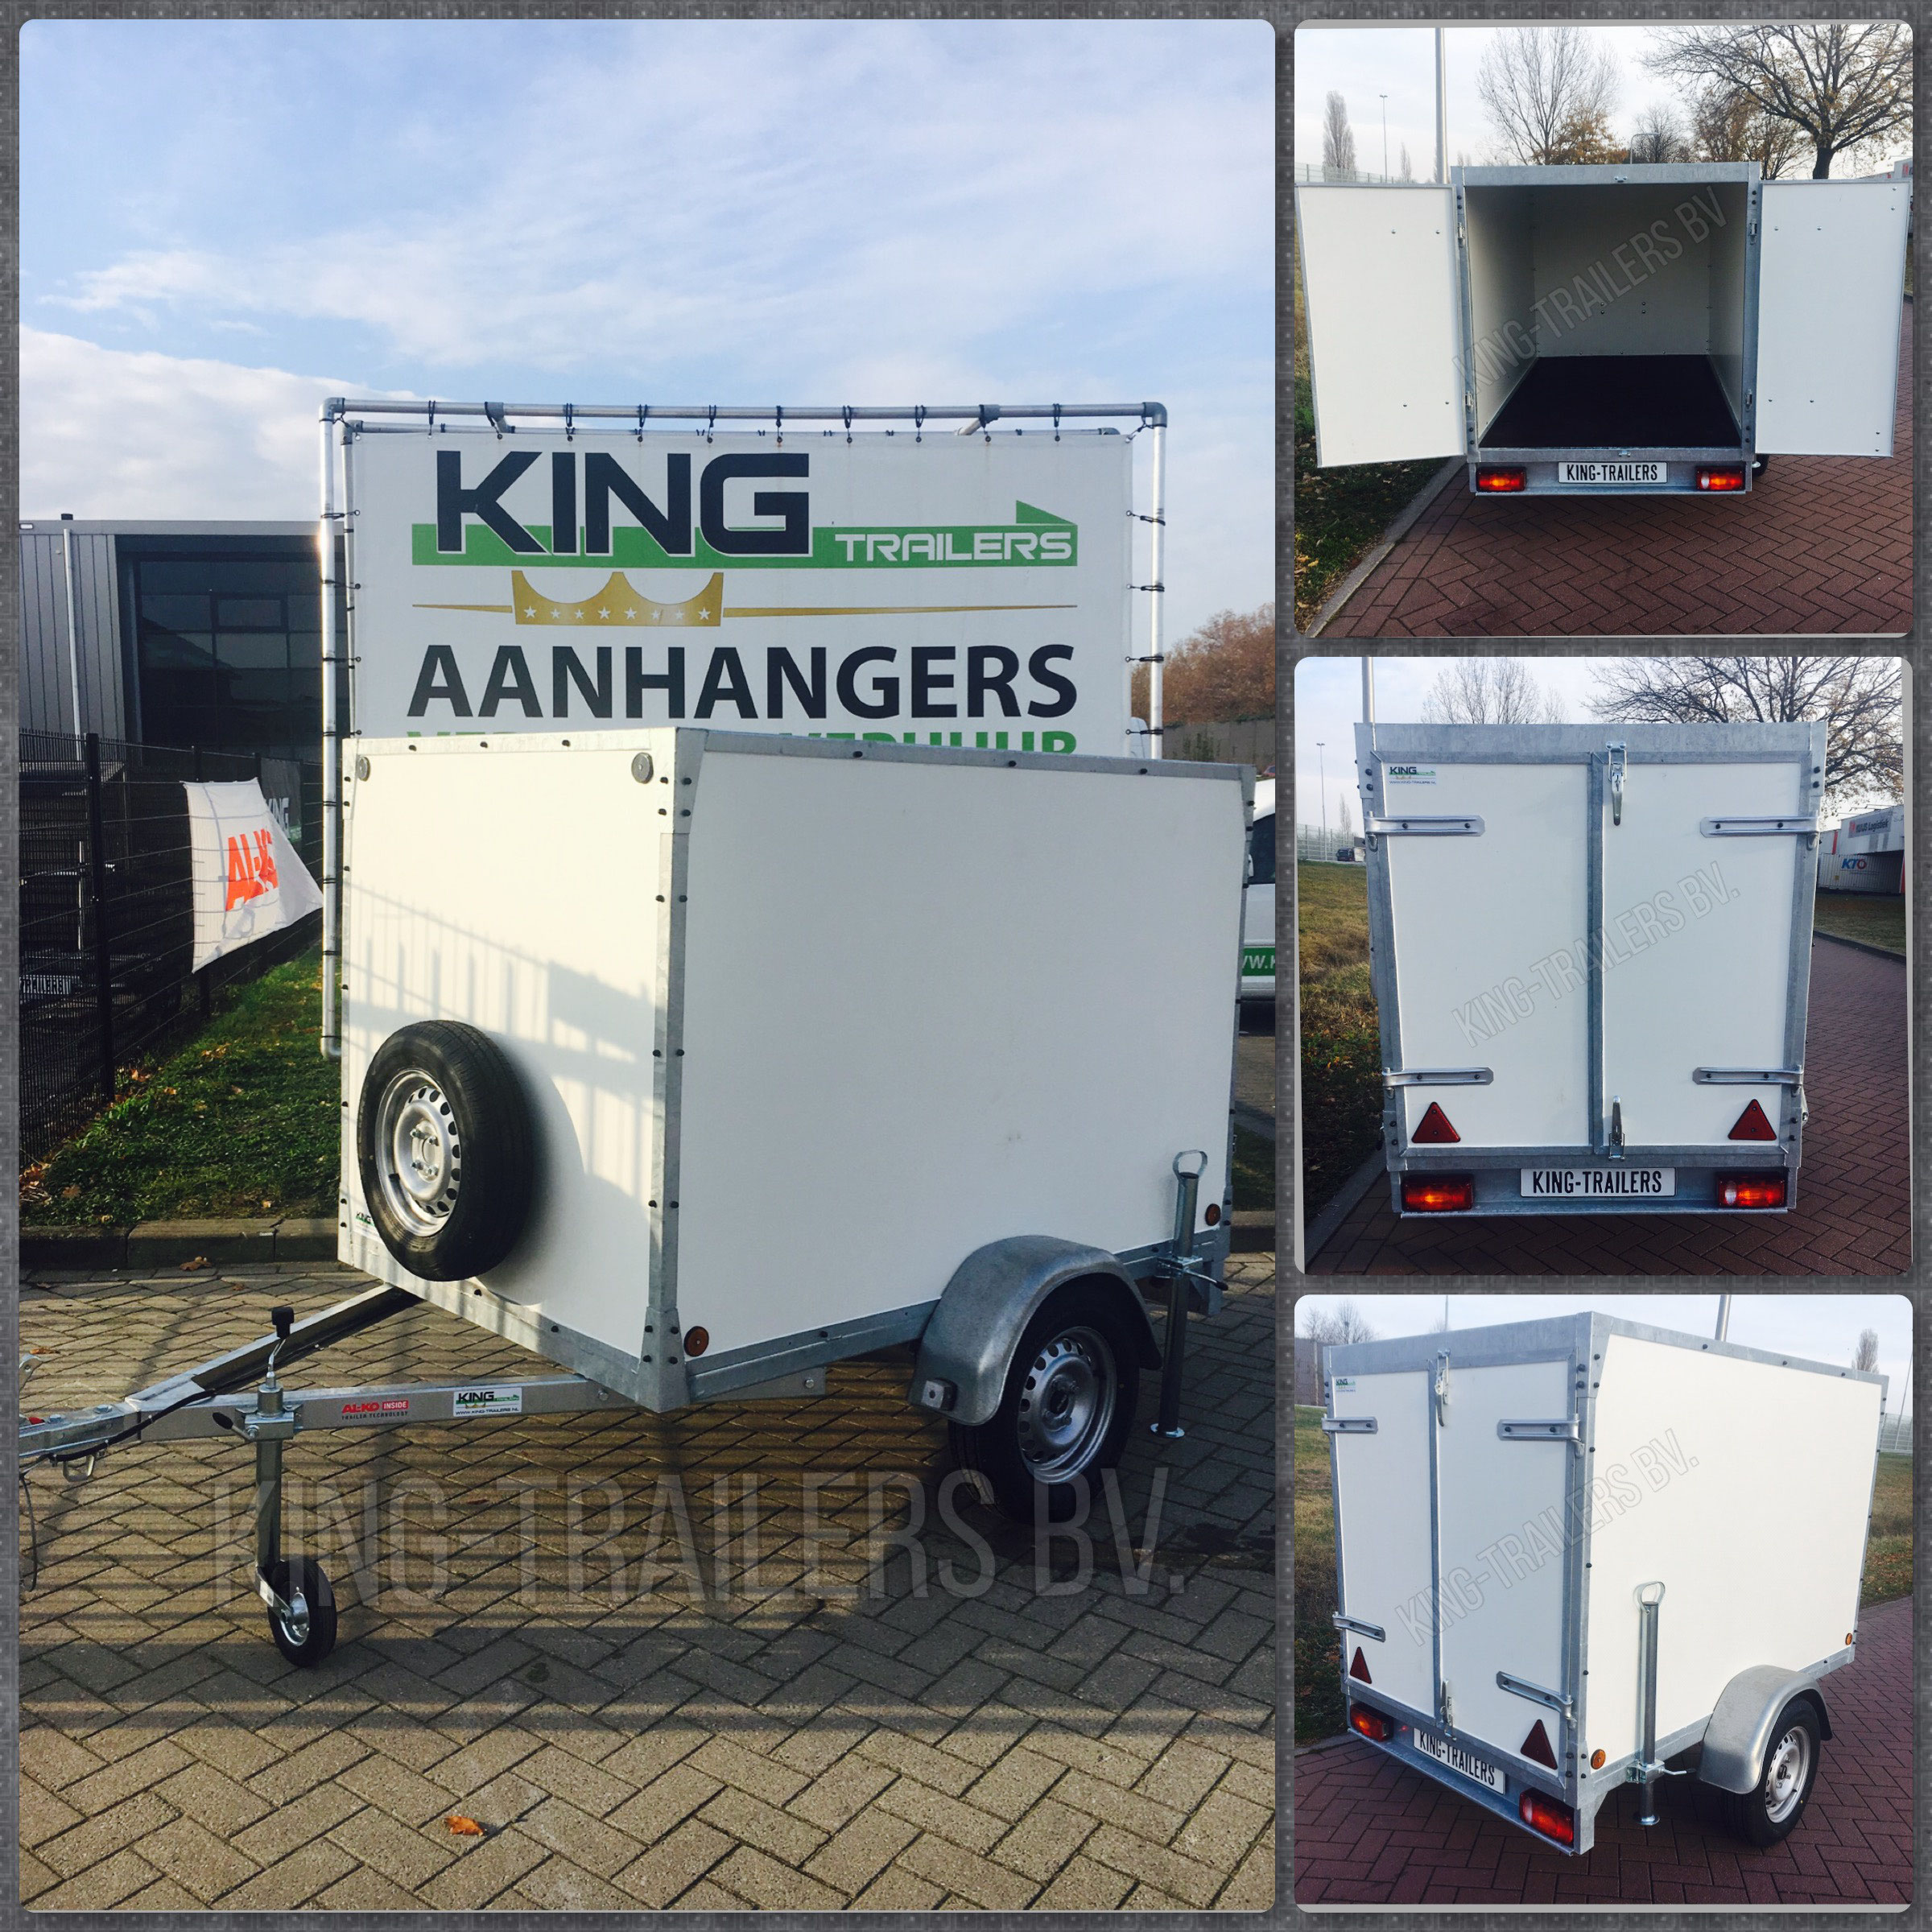 (c) King-trailers.nl